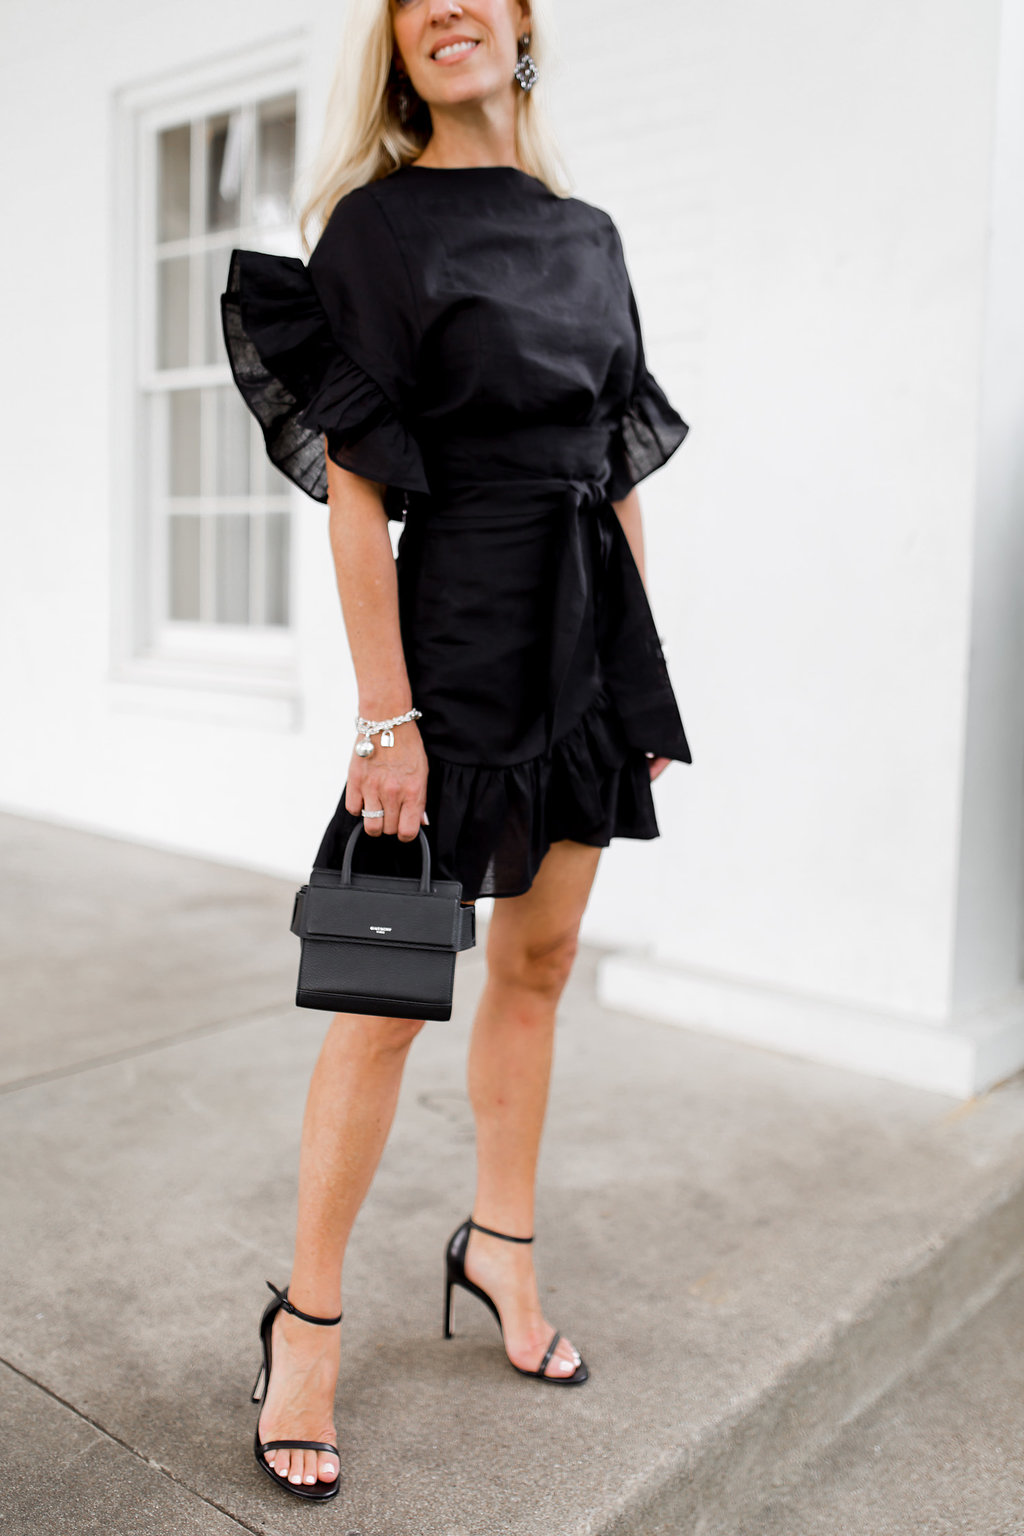 Alicia Wood, Dallas Lifestyle Blogger, Dallas Fashion blog, Storets Jenny Dress, Best LBD for Holiday Parties